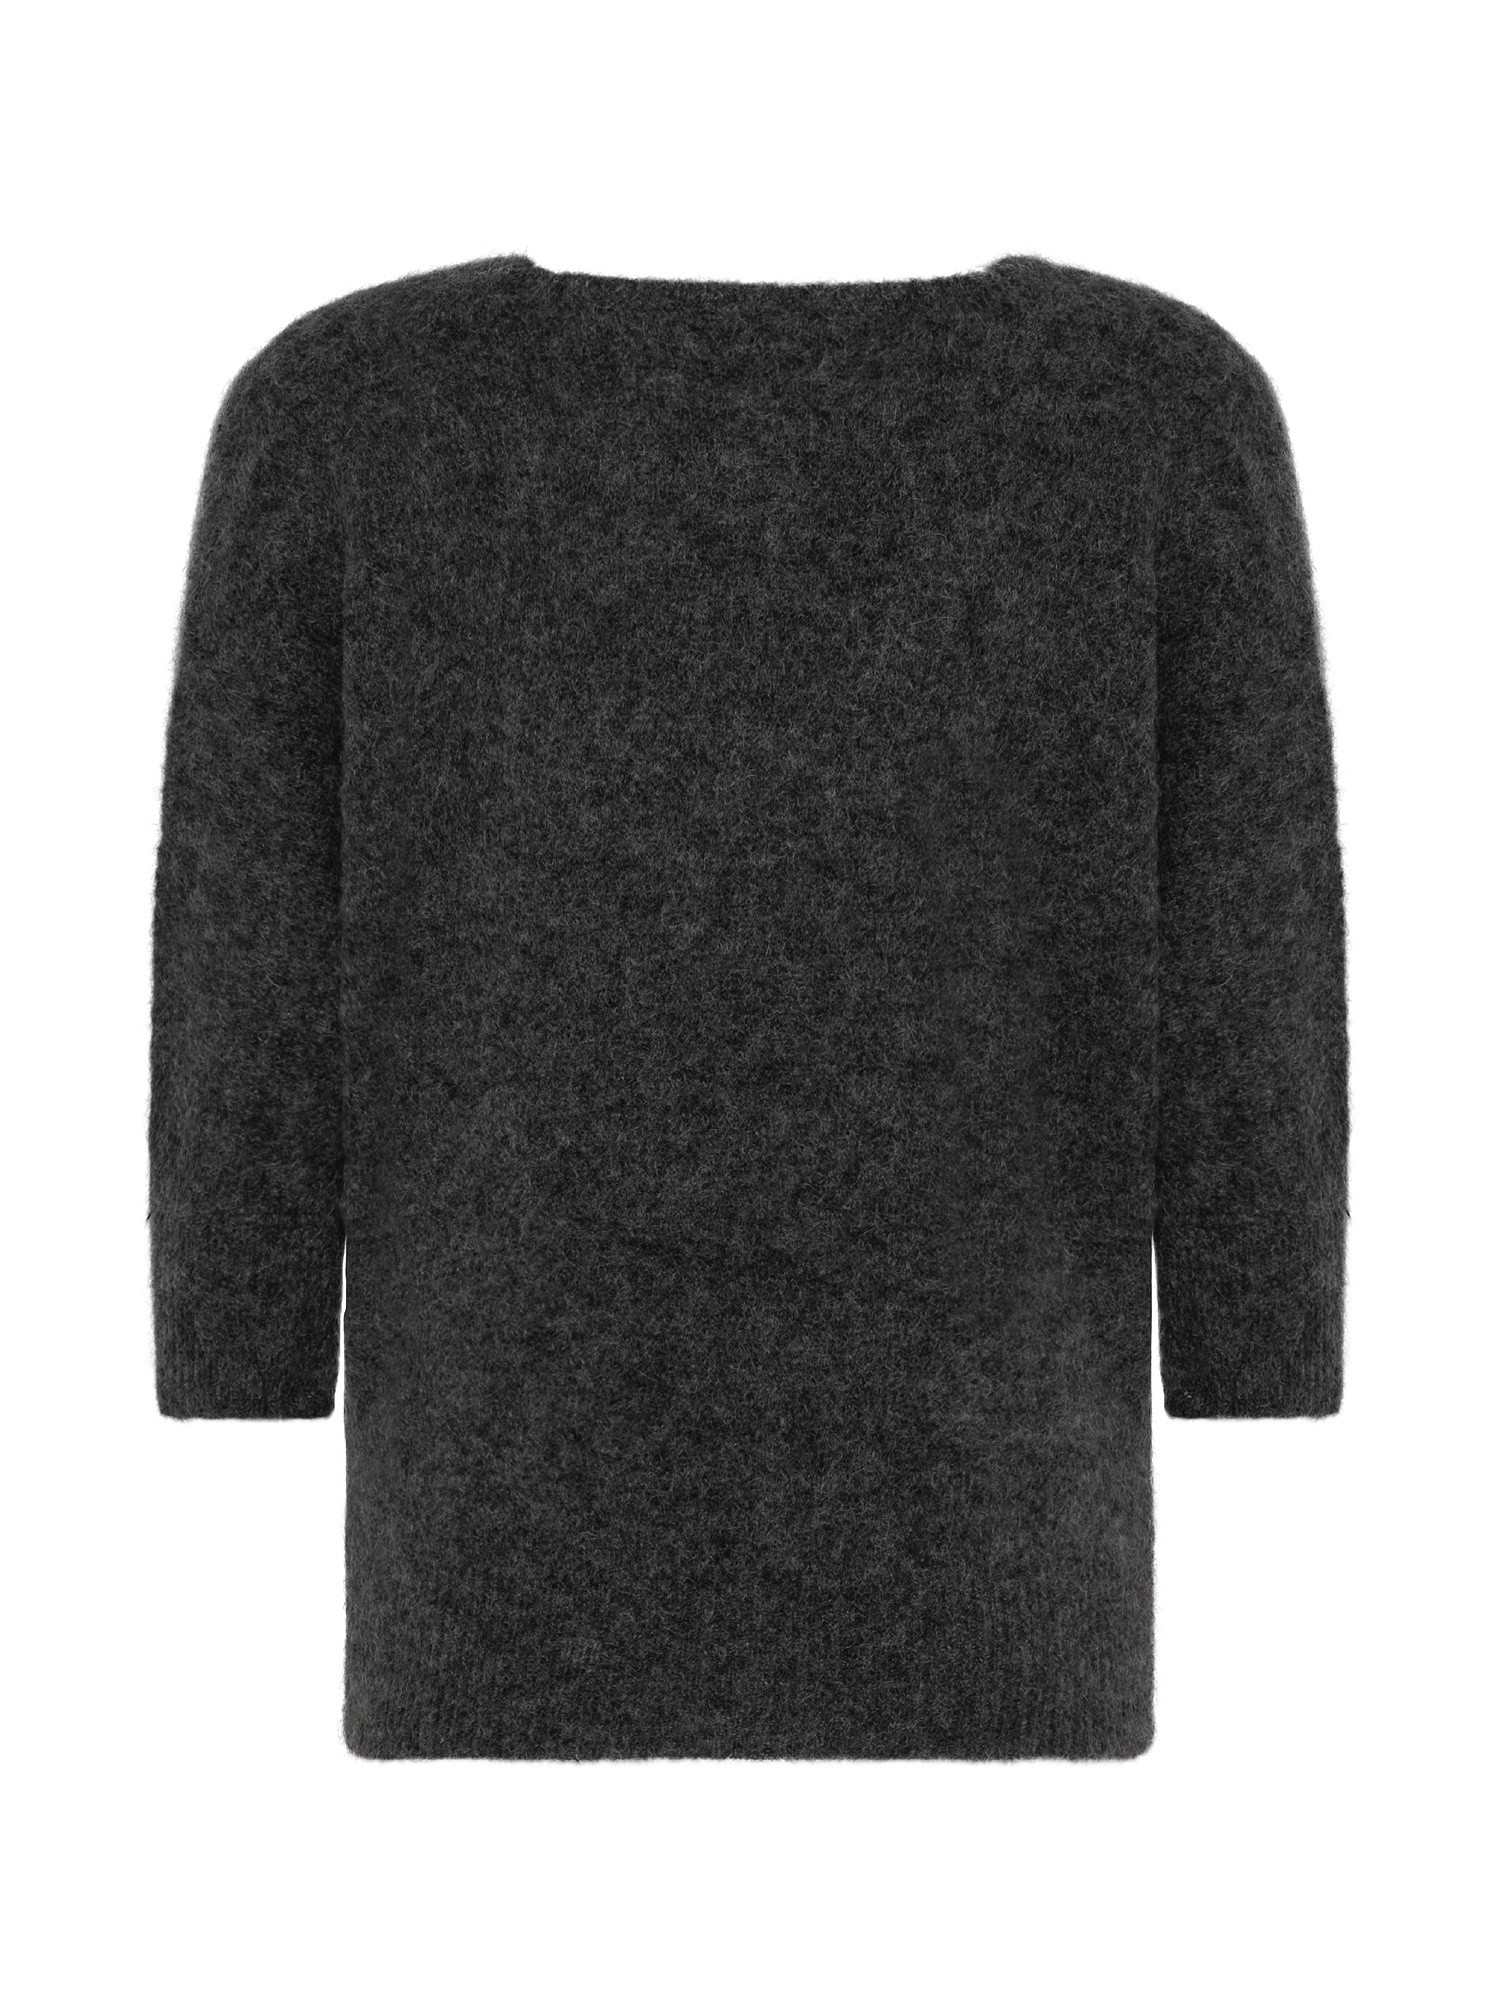 Maglia in kid mohair stretch, Grigio, large image number 1